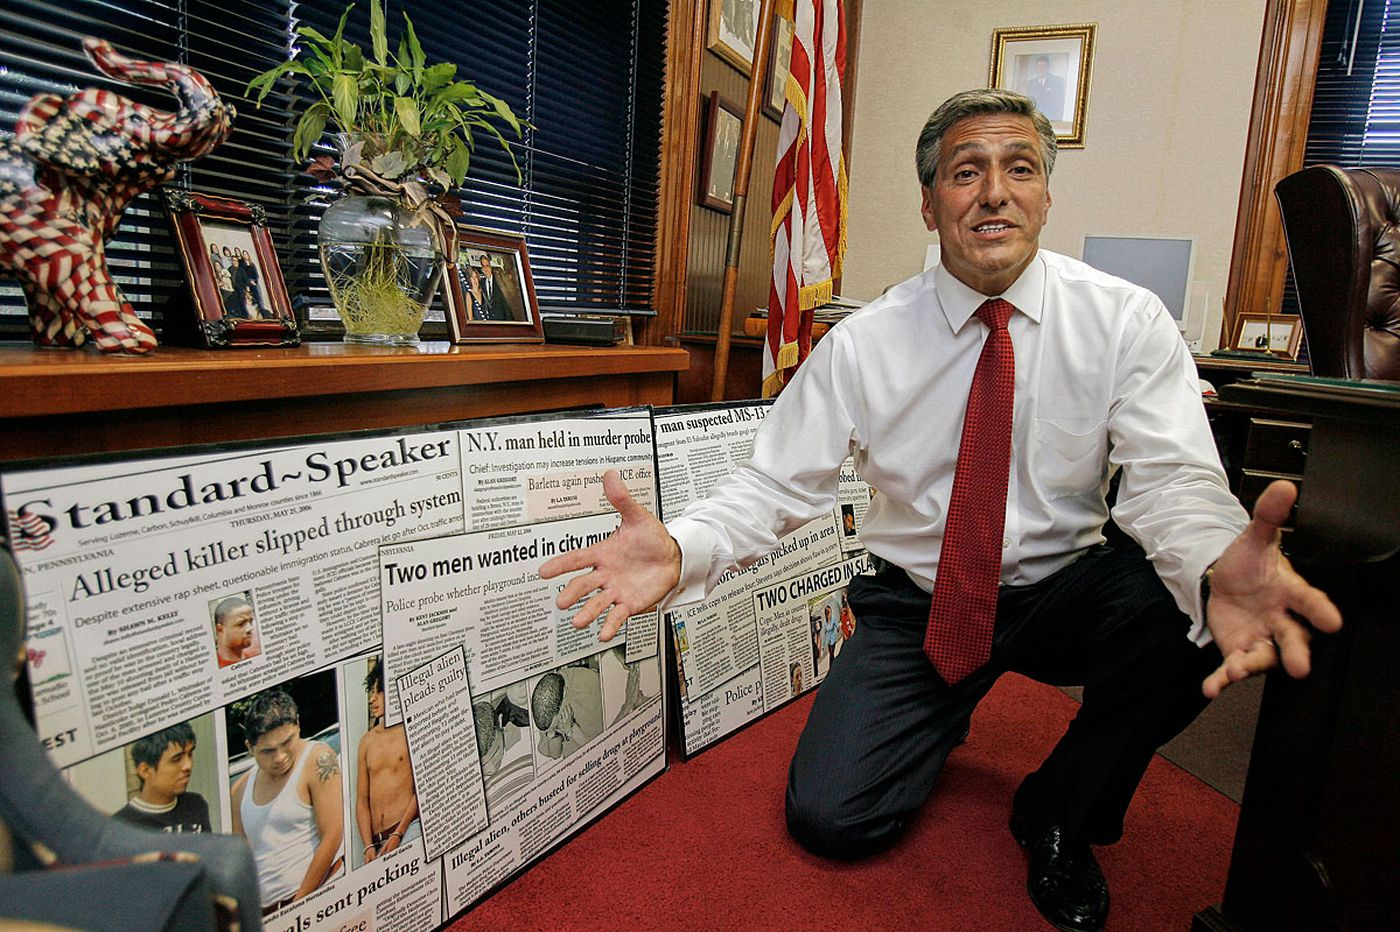 In 2006 war on illegal immigration, Hazleton's ex-mayor was 'ahead of our time'